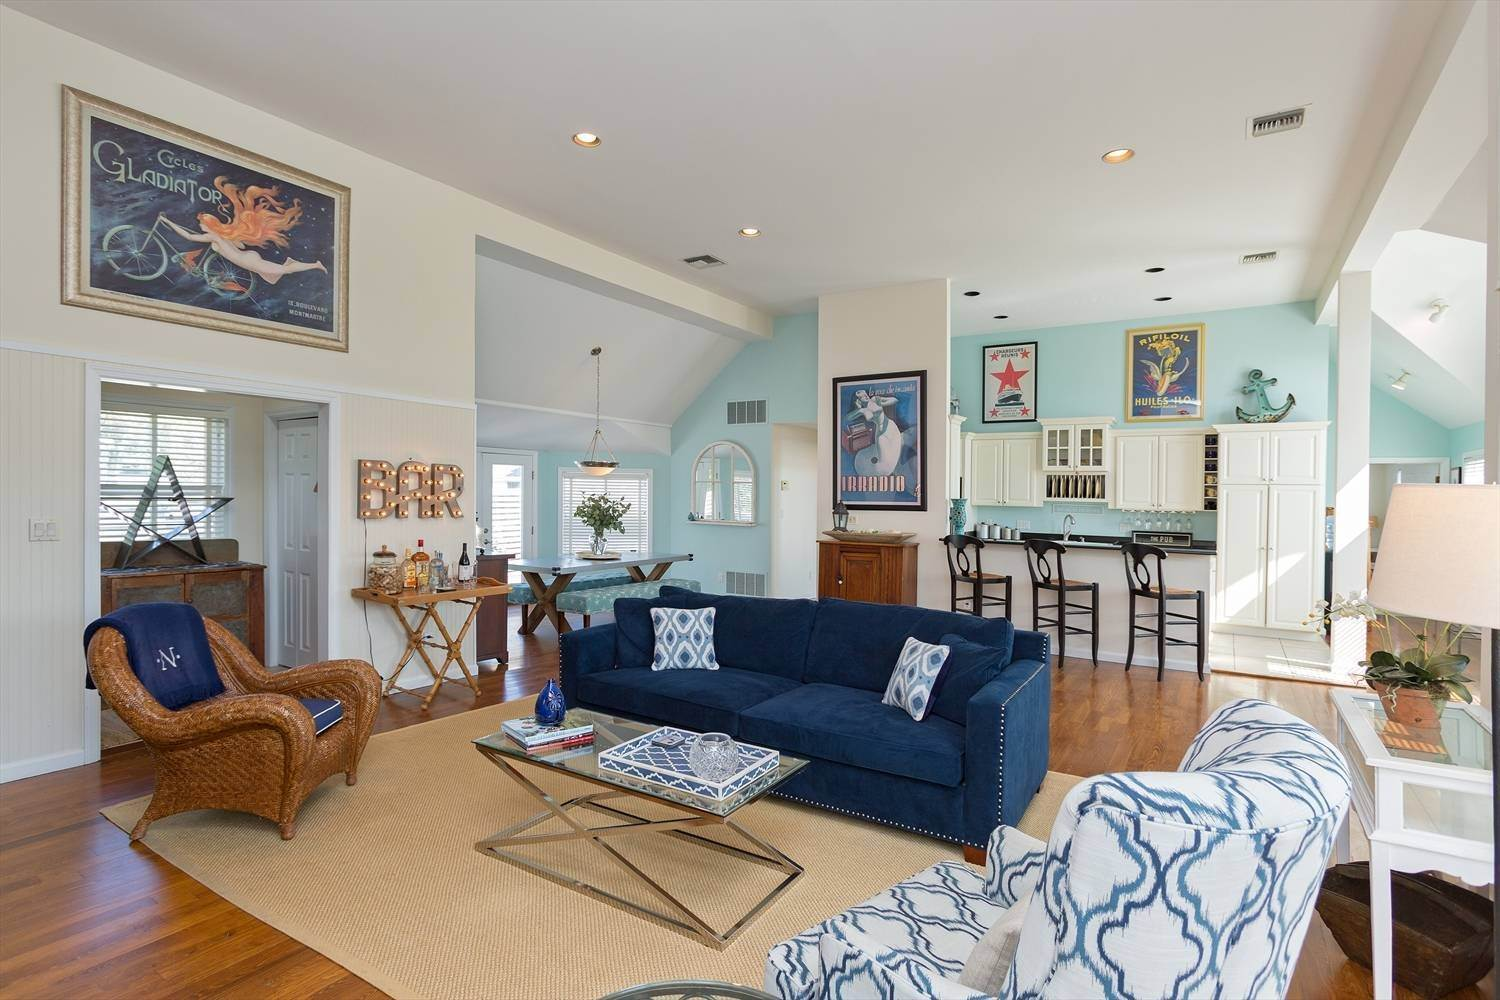 Condominiums for Sale at Westhampton Beach Village, NY 11978